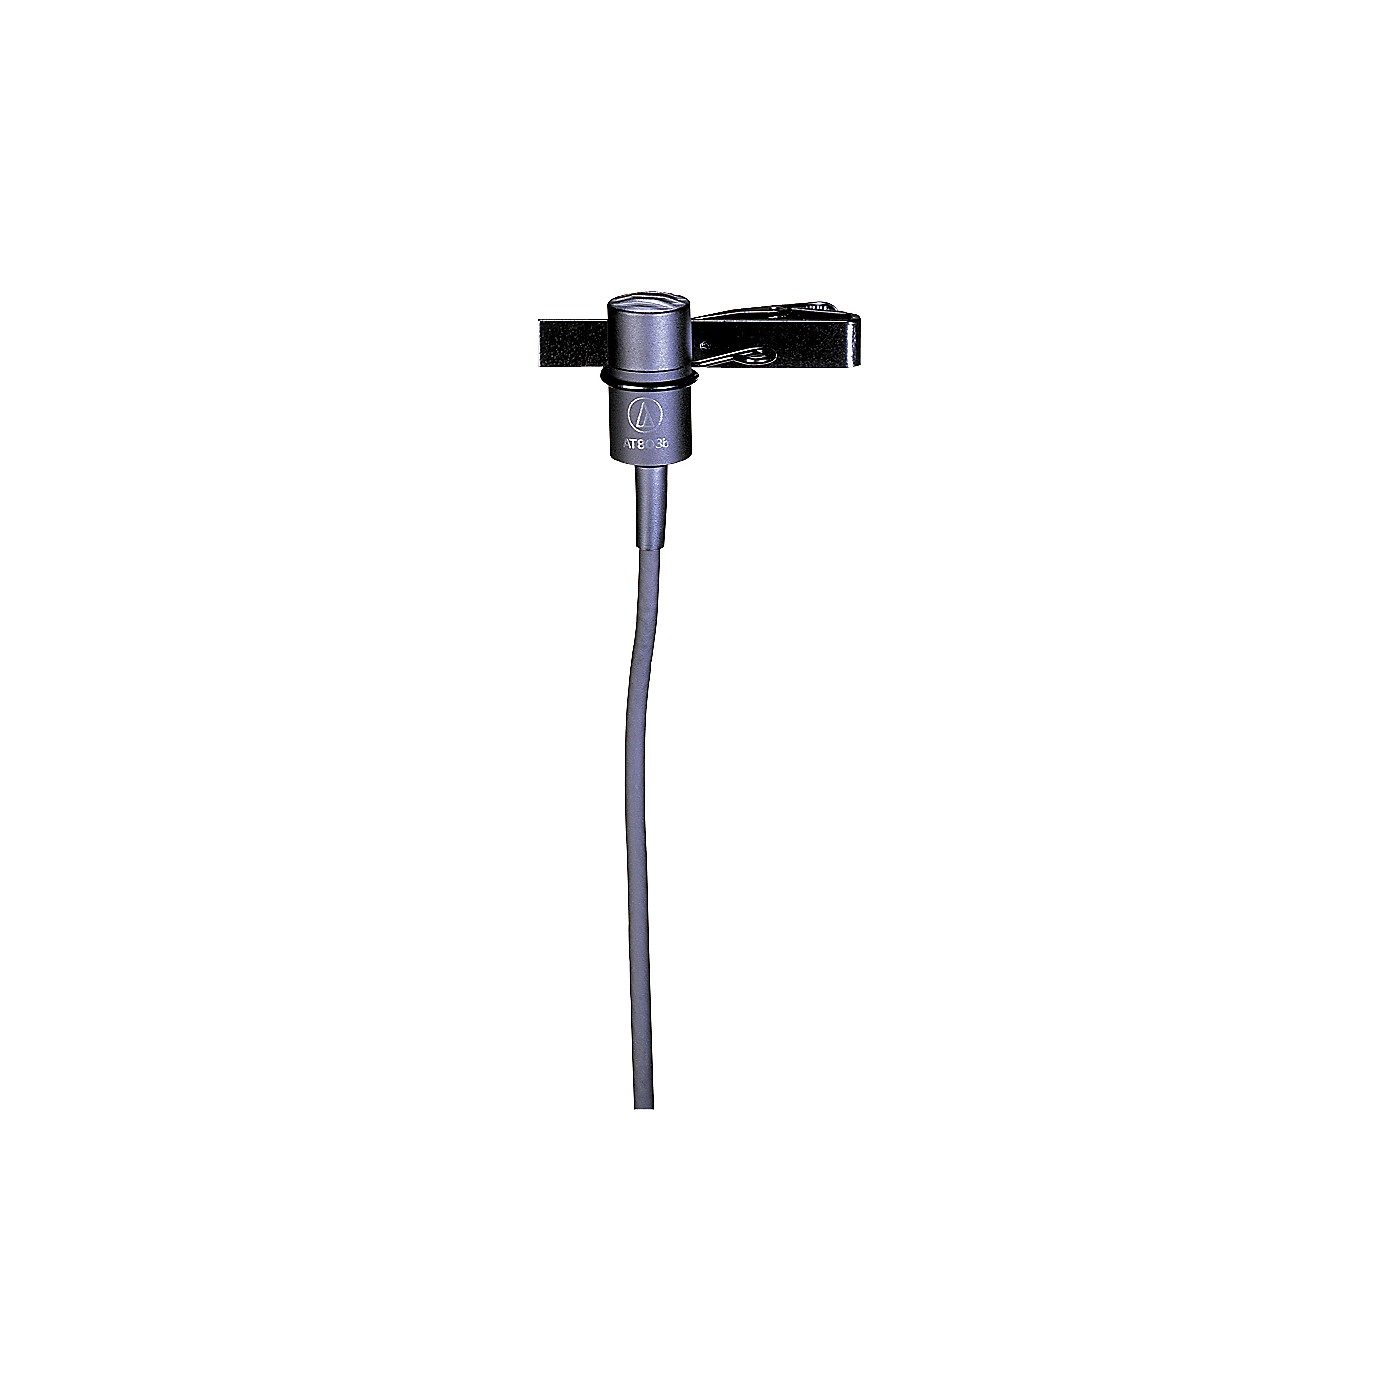 Audio-Technica AT803 Omnidirectional Condenser Lavalier Microphone thumbnail